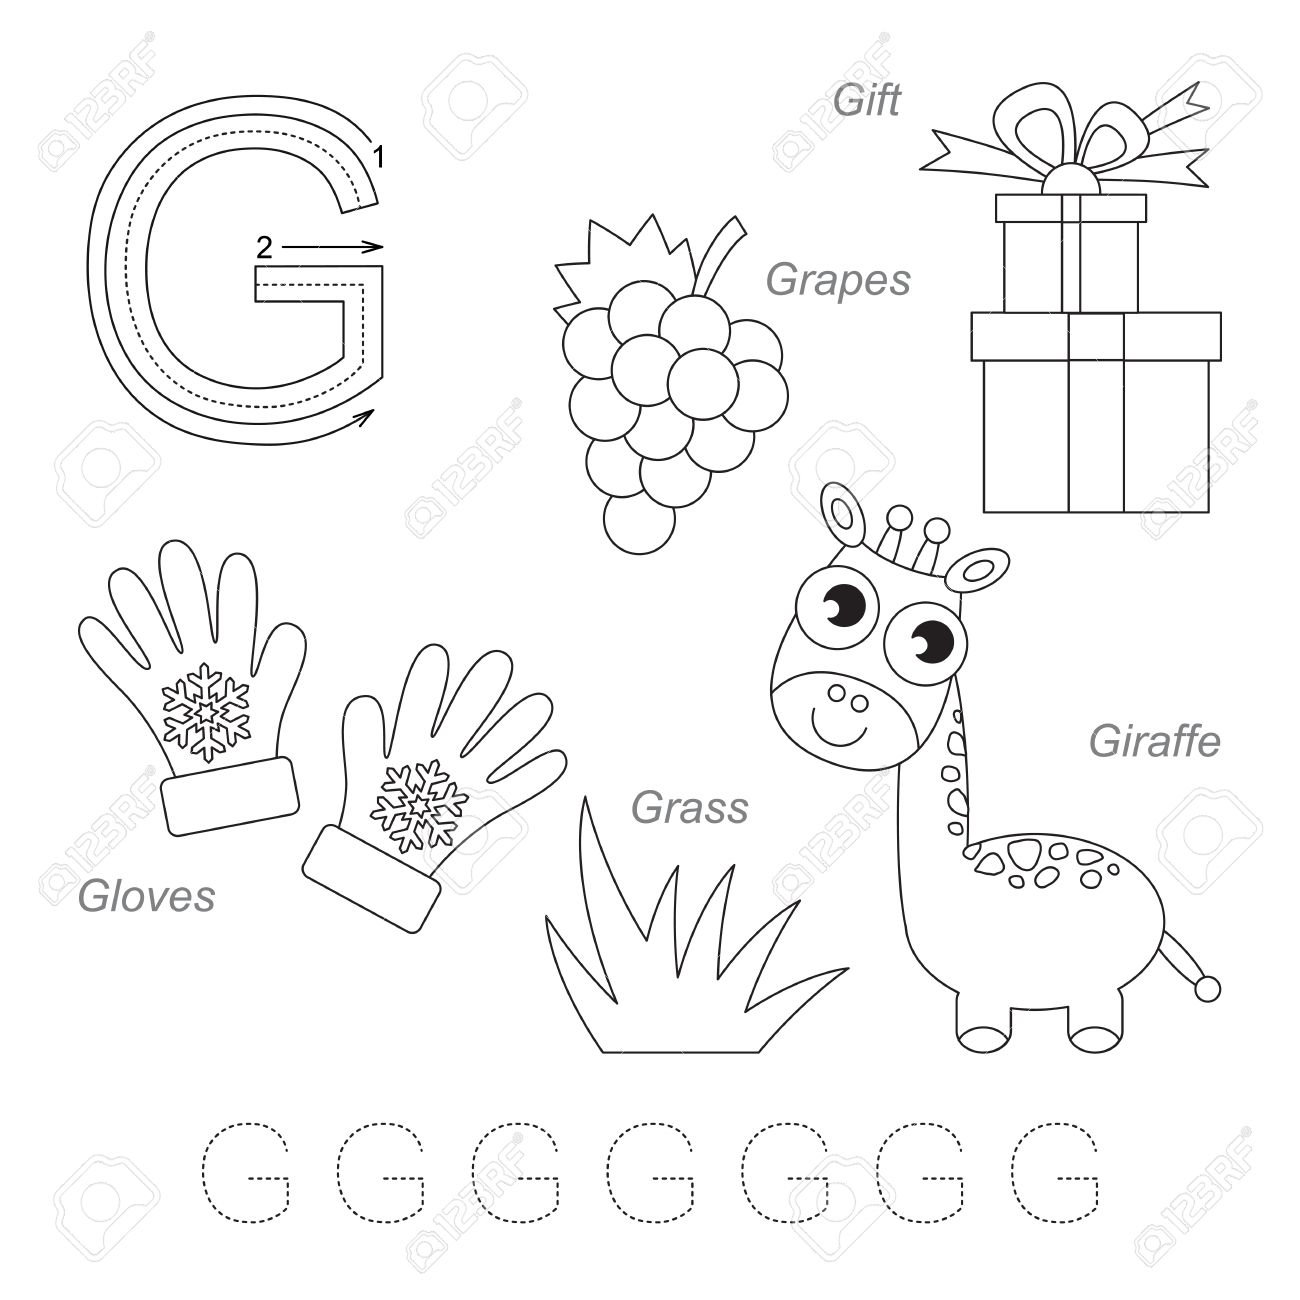 Tracing Worksheet For Children. Full English Alphabet From A.. pertaining to Alphabet G Tracing Worksheets